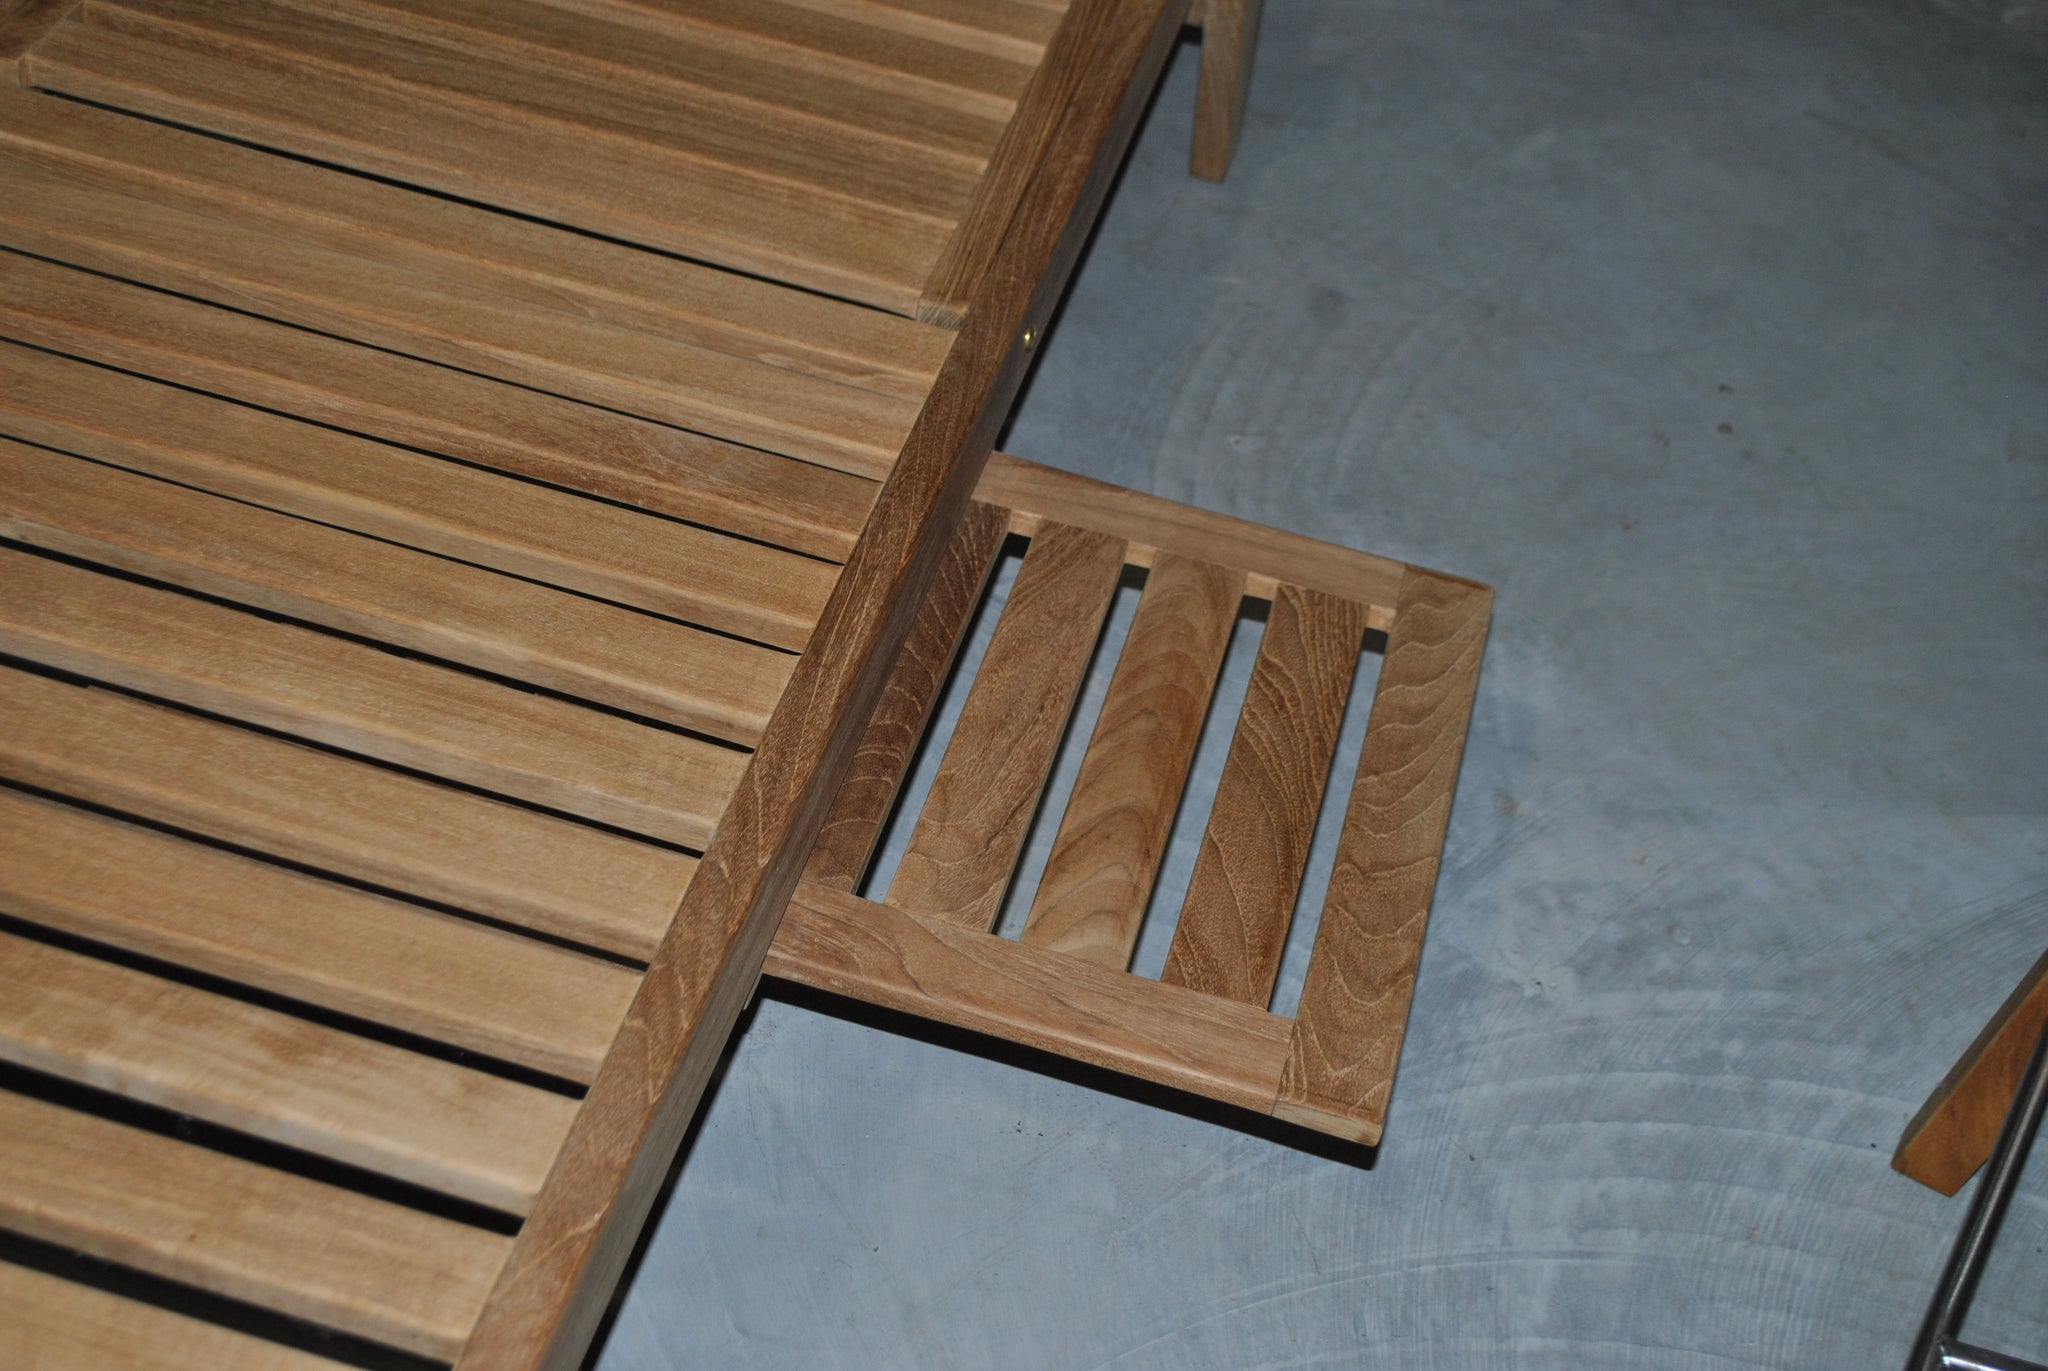 Teak sun lounger with pull out tray close up